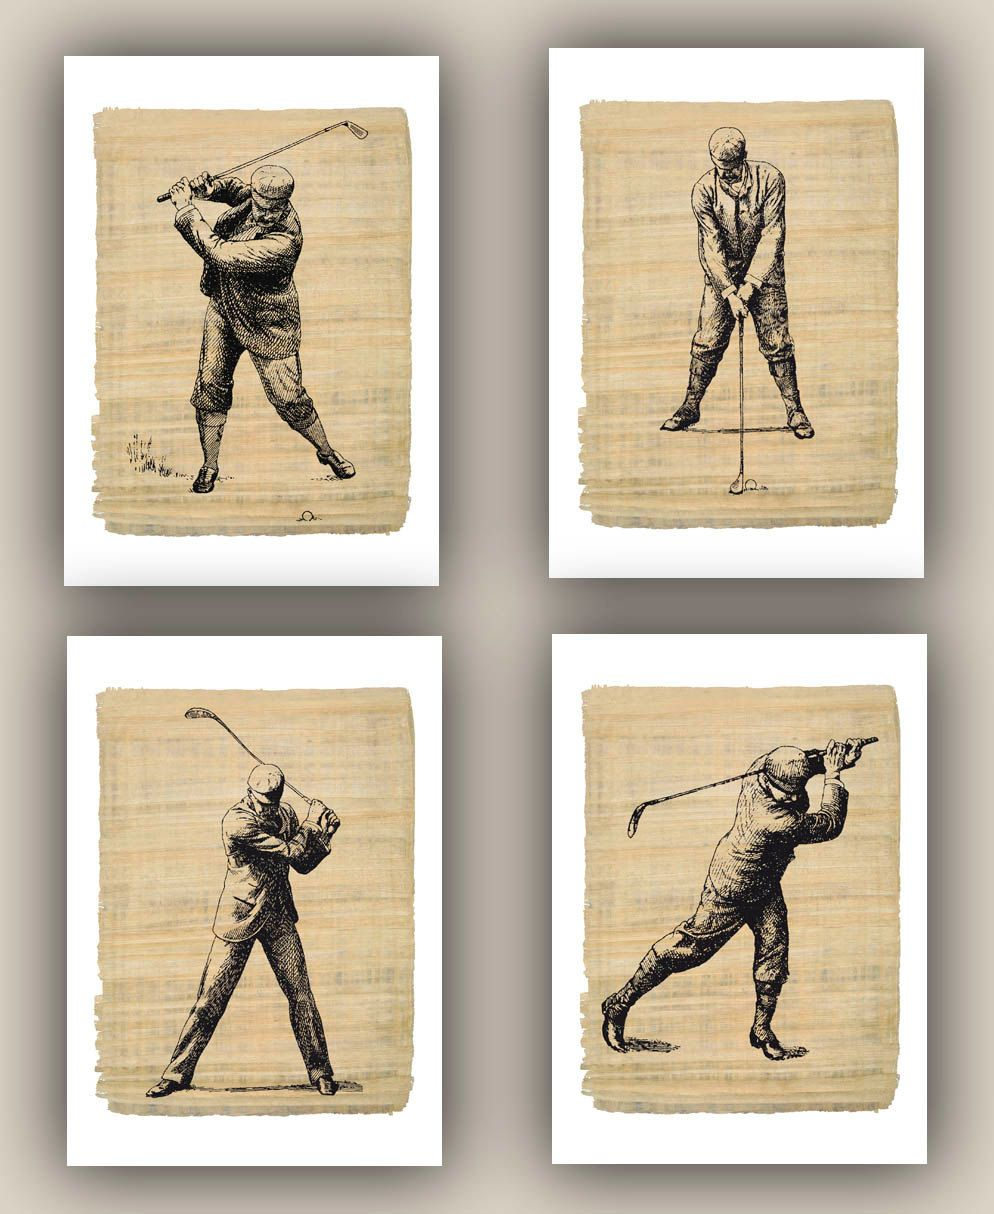 Golf Bedroom Decor | Decor | Pinterest | Golf, Bedrooms and Men cave